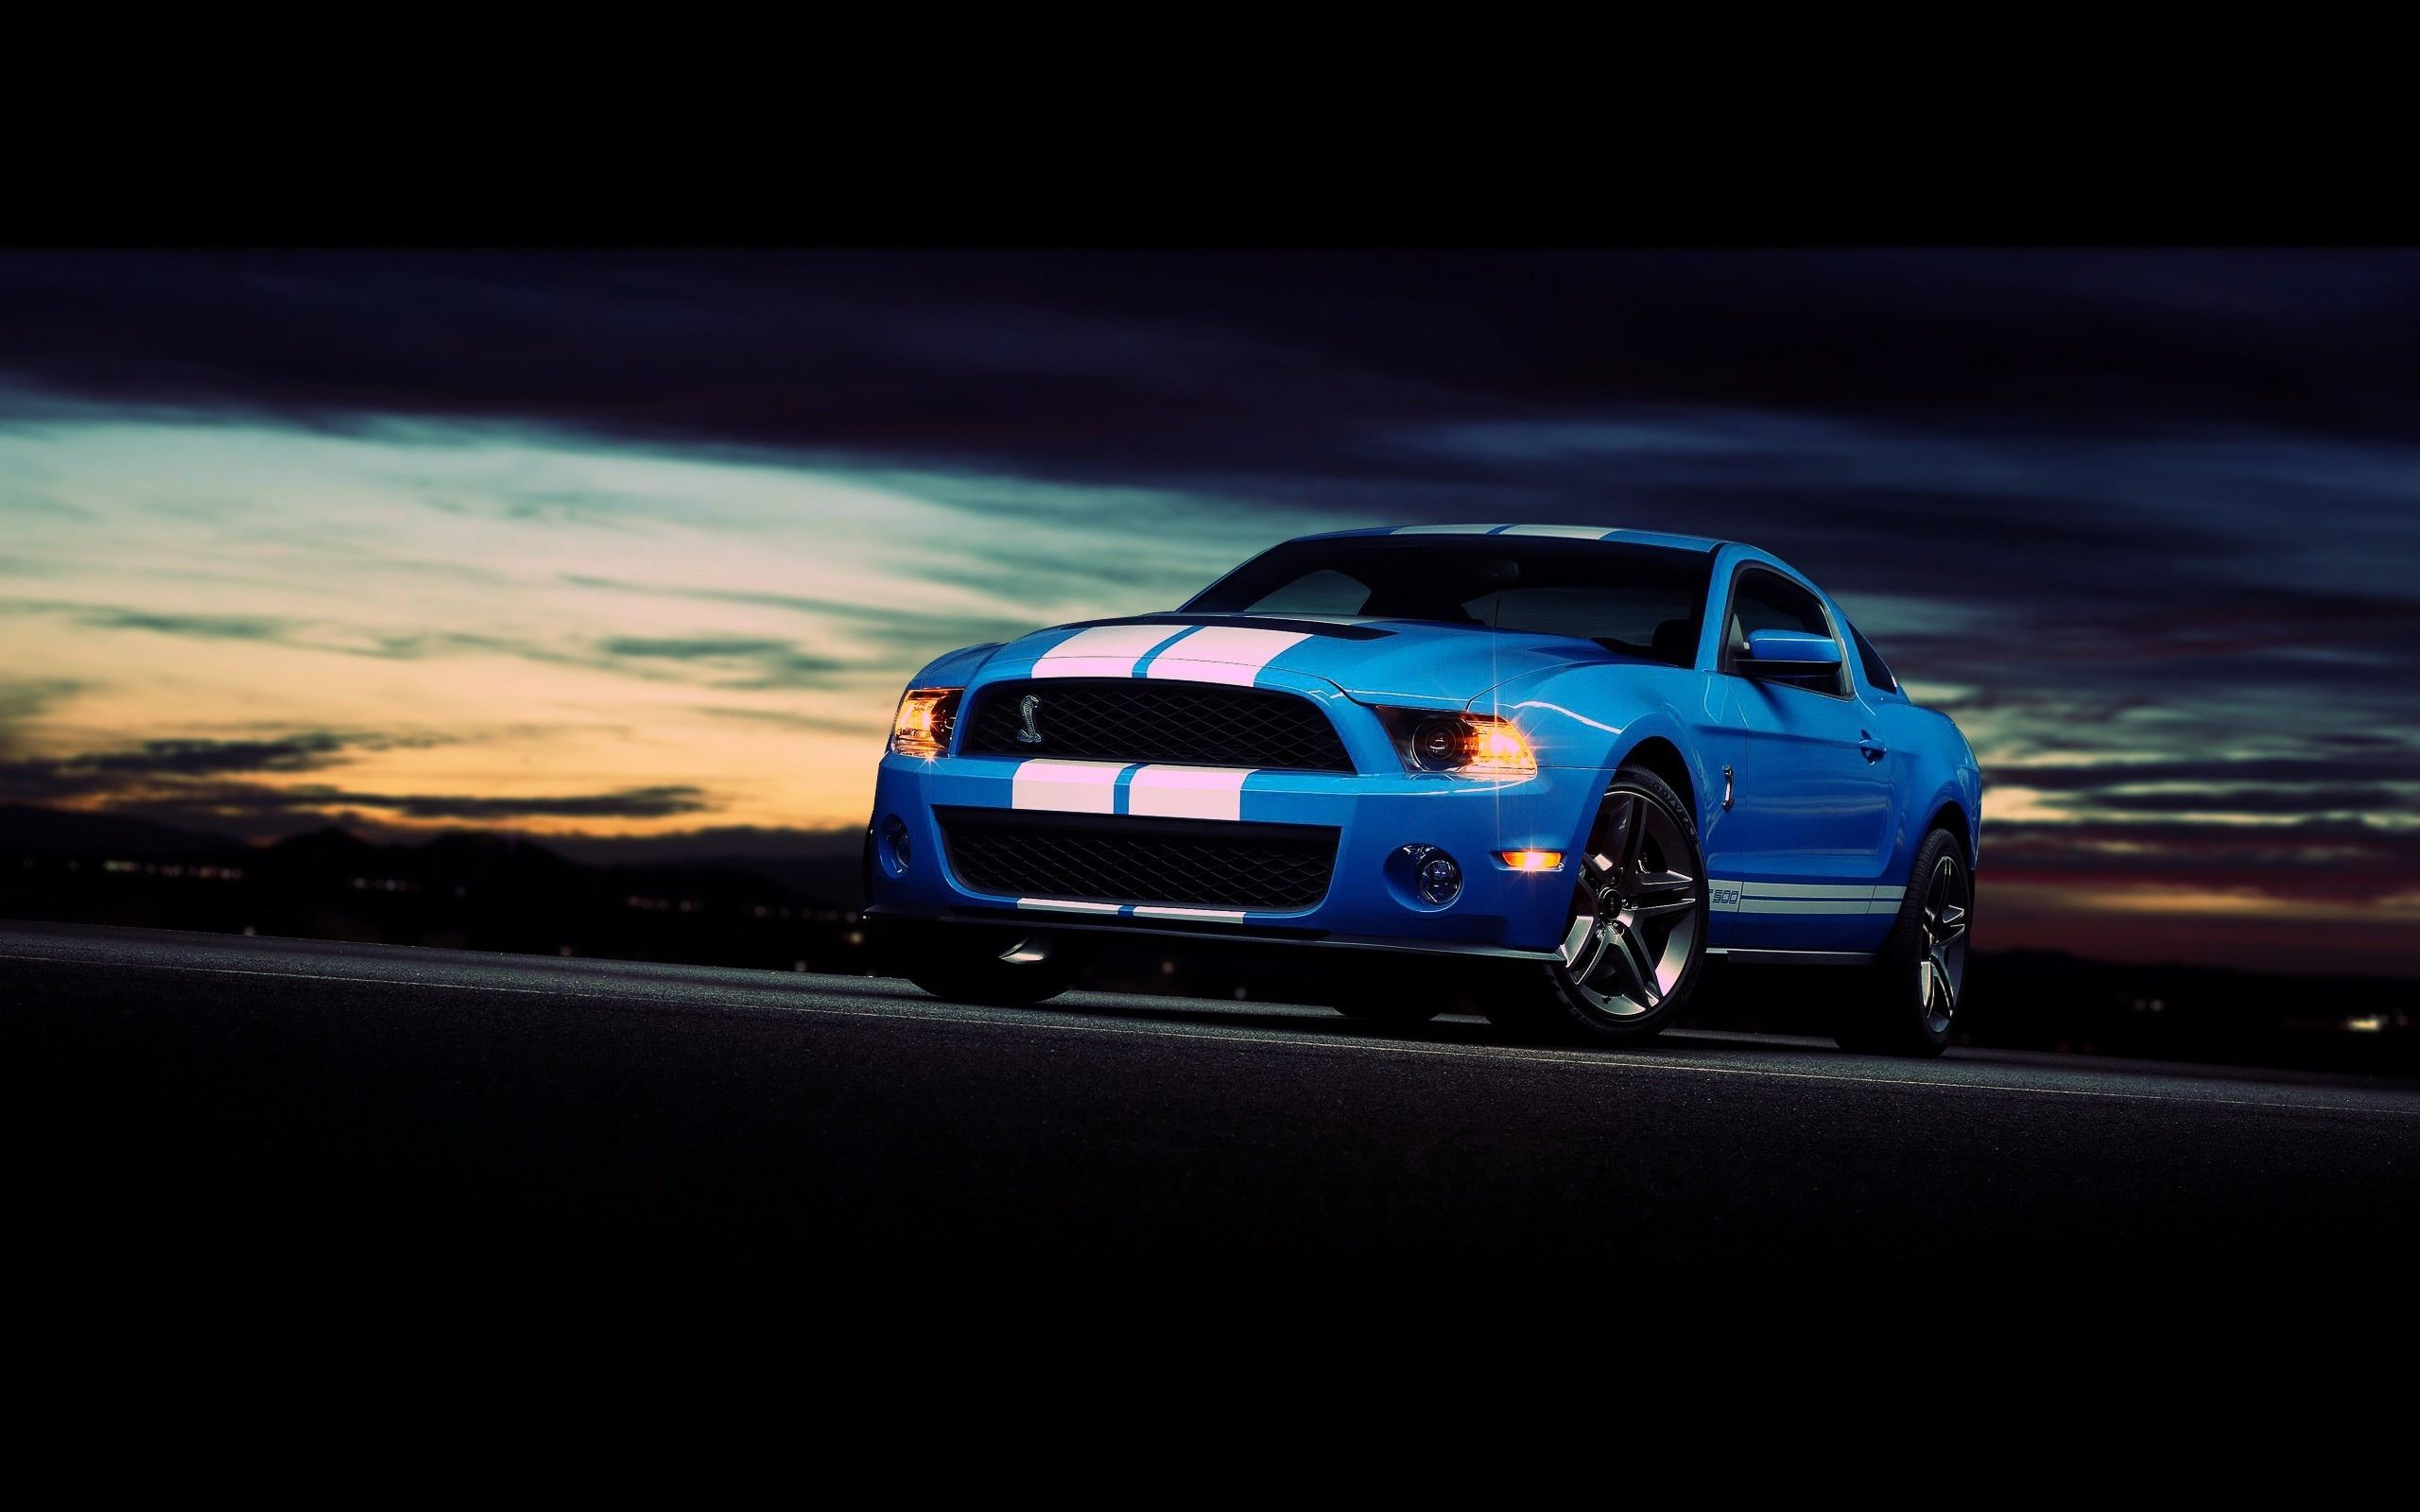 Ford Mustang Shelby Gt500 Hdwallpaperfx Pinterest Shelby Gt500